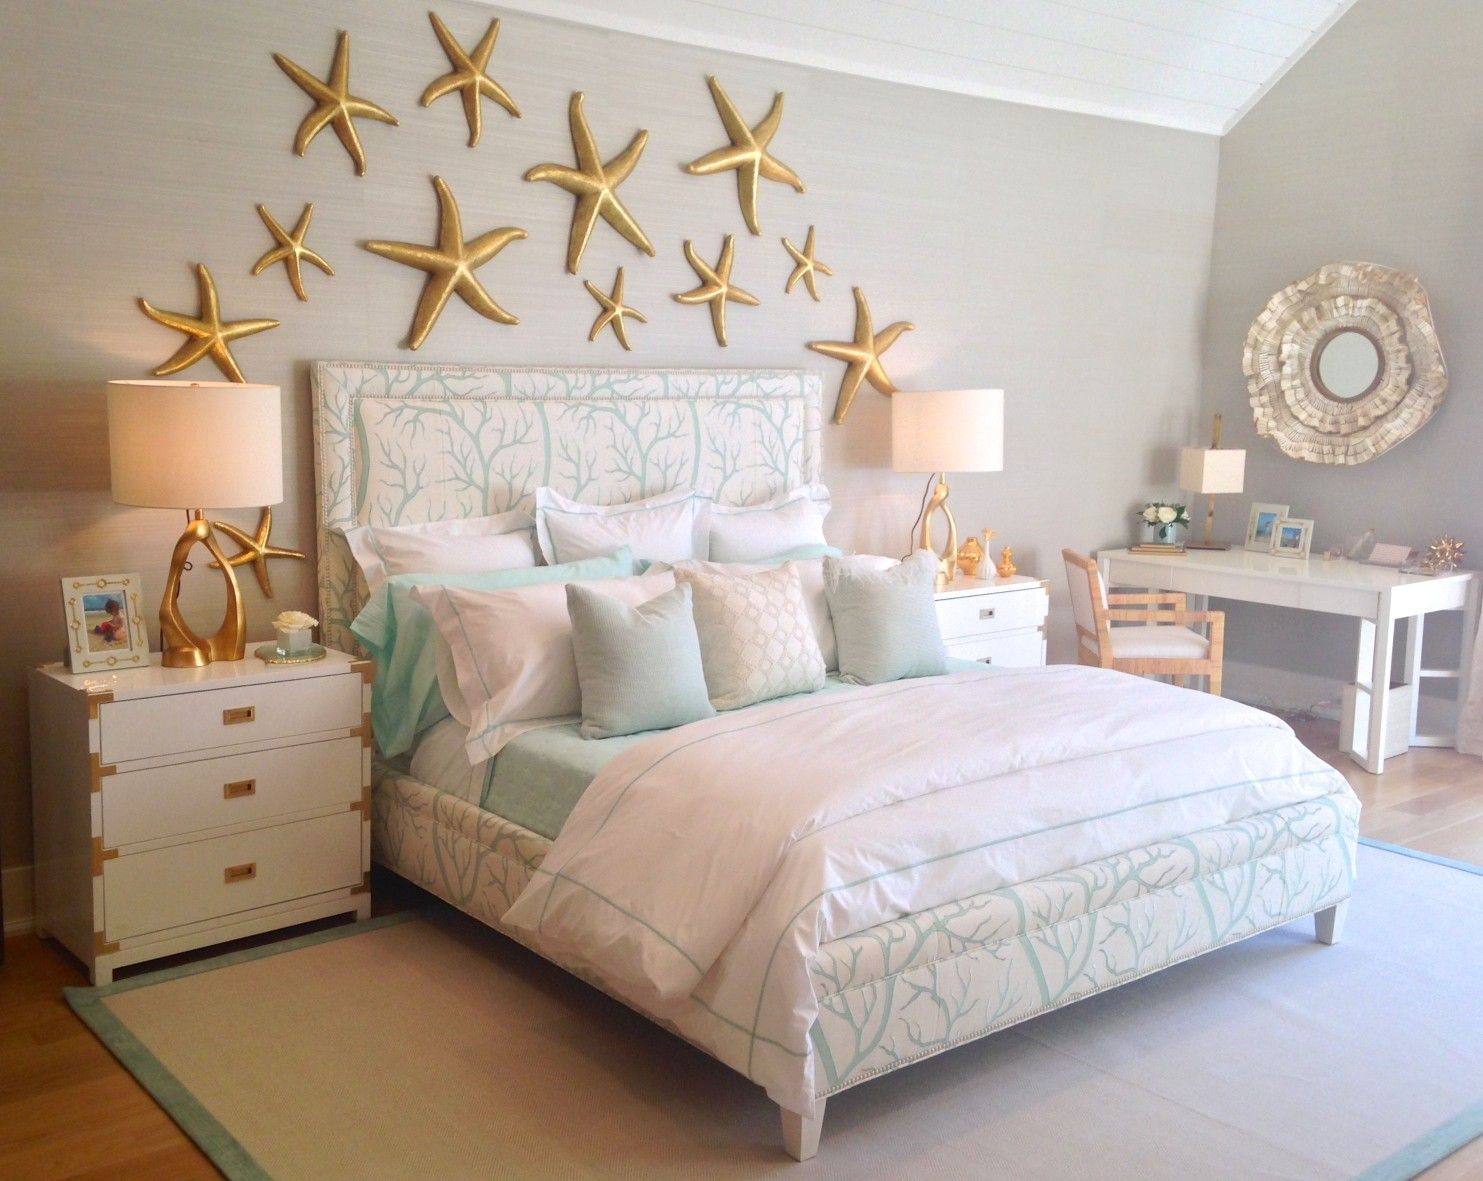 Pin By Jadelyn De Leon On Bedrooms With Images Ocean Decor